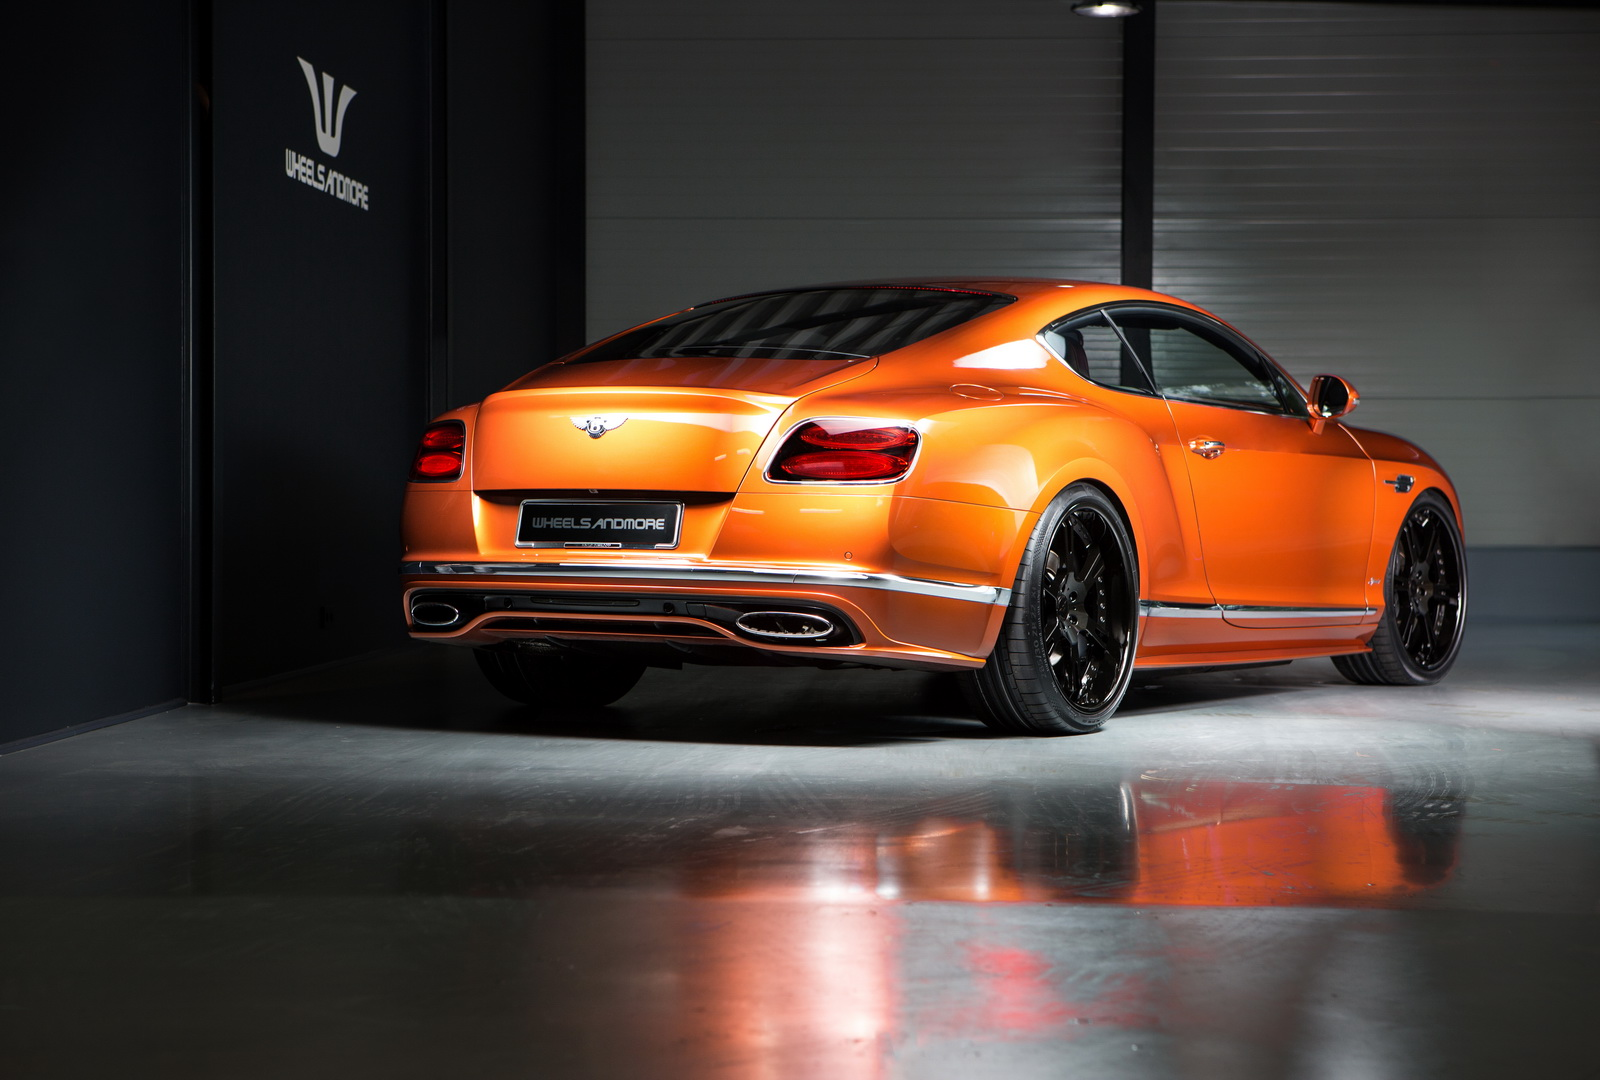 Bentley Continental GT Speed by Wheelsandmore (3)